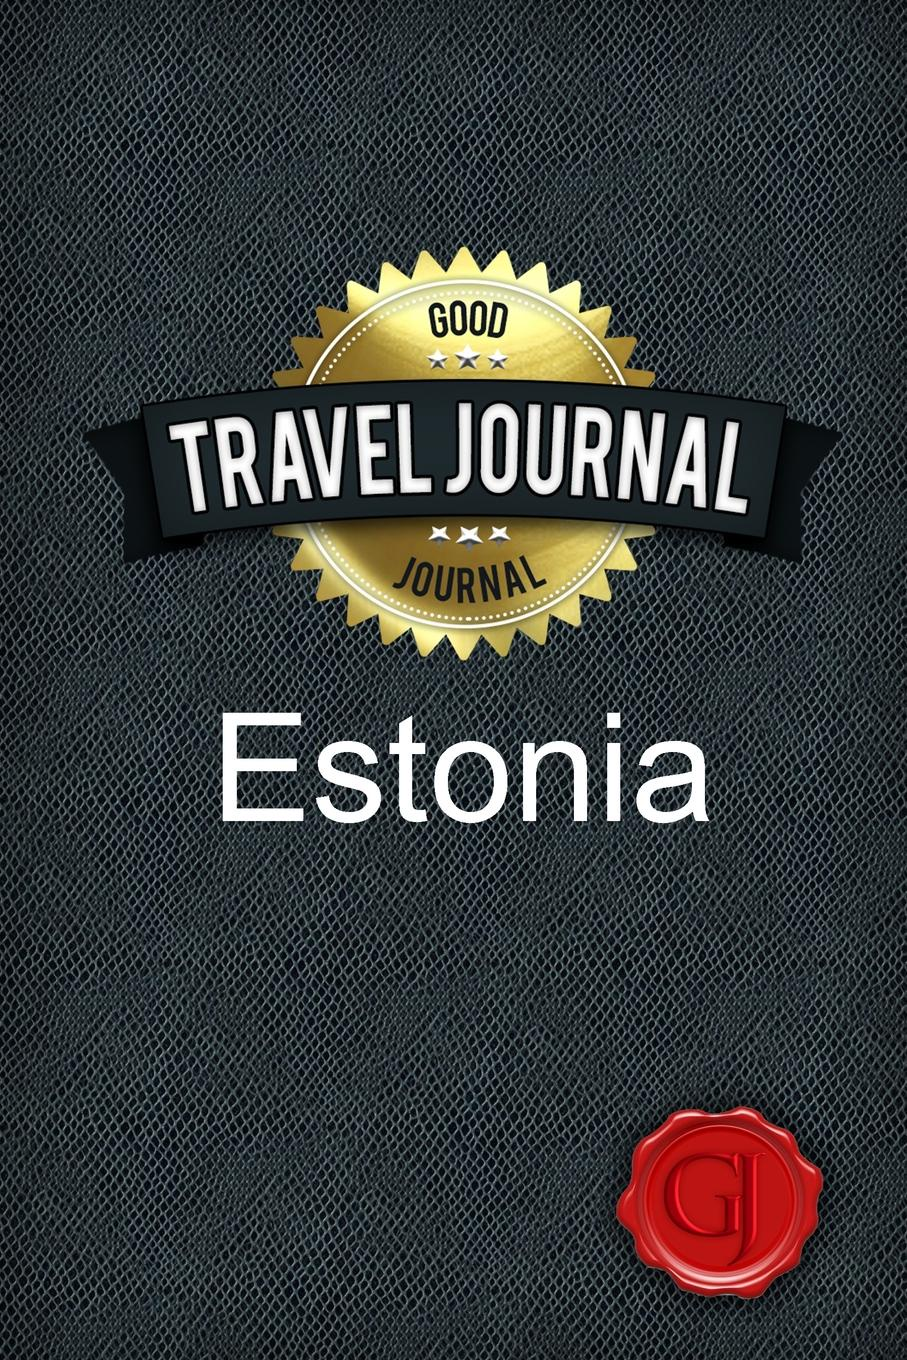 Good Journal Travel Journal Estonia